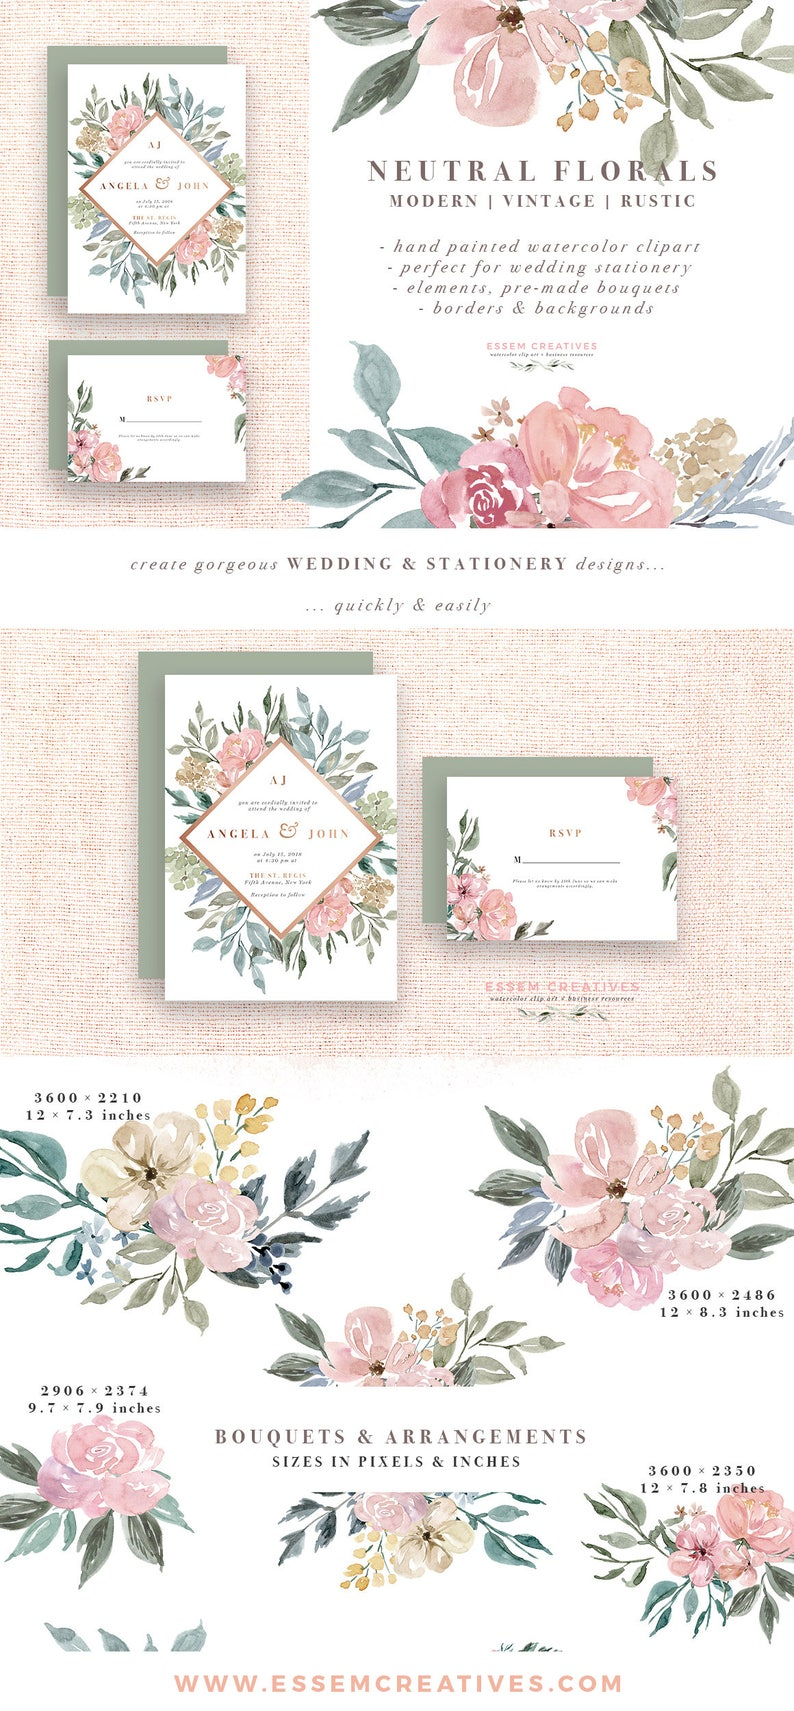 Image 0: Wedding Invitations With Flowers At Websimilar.org